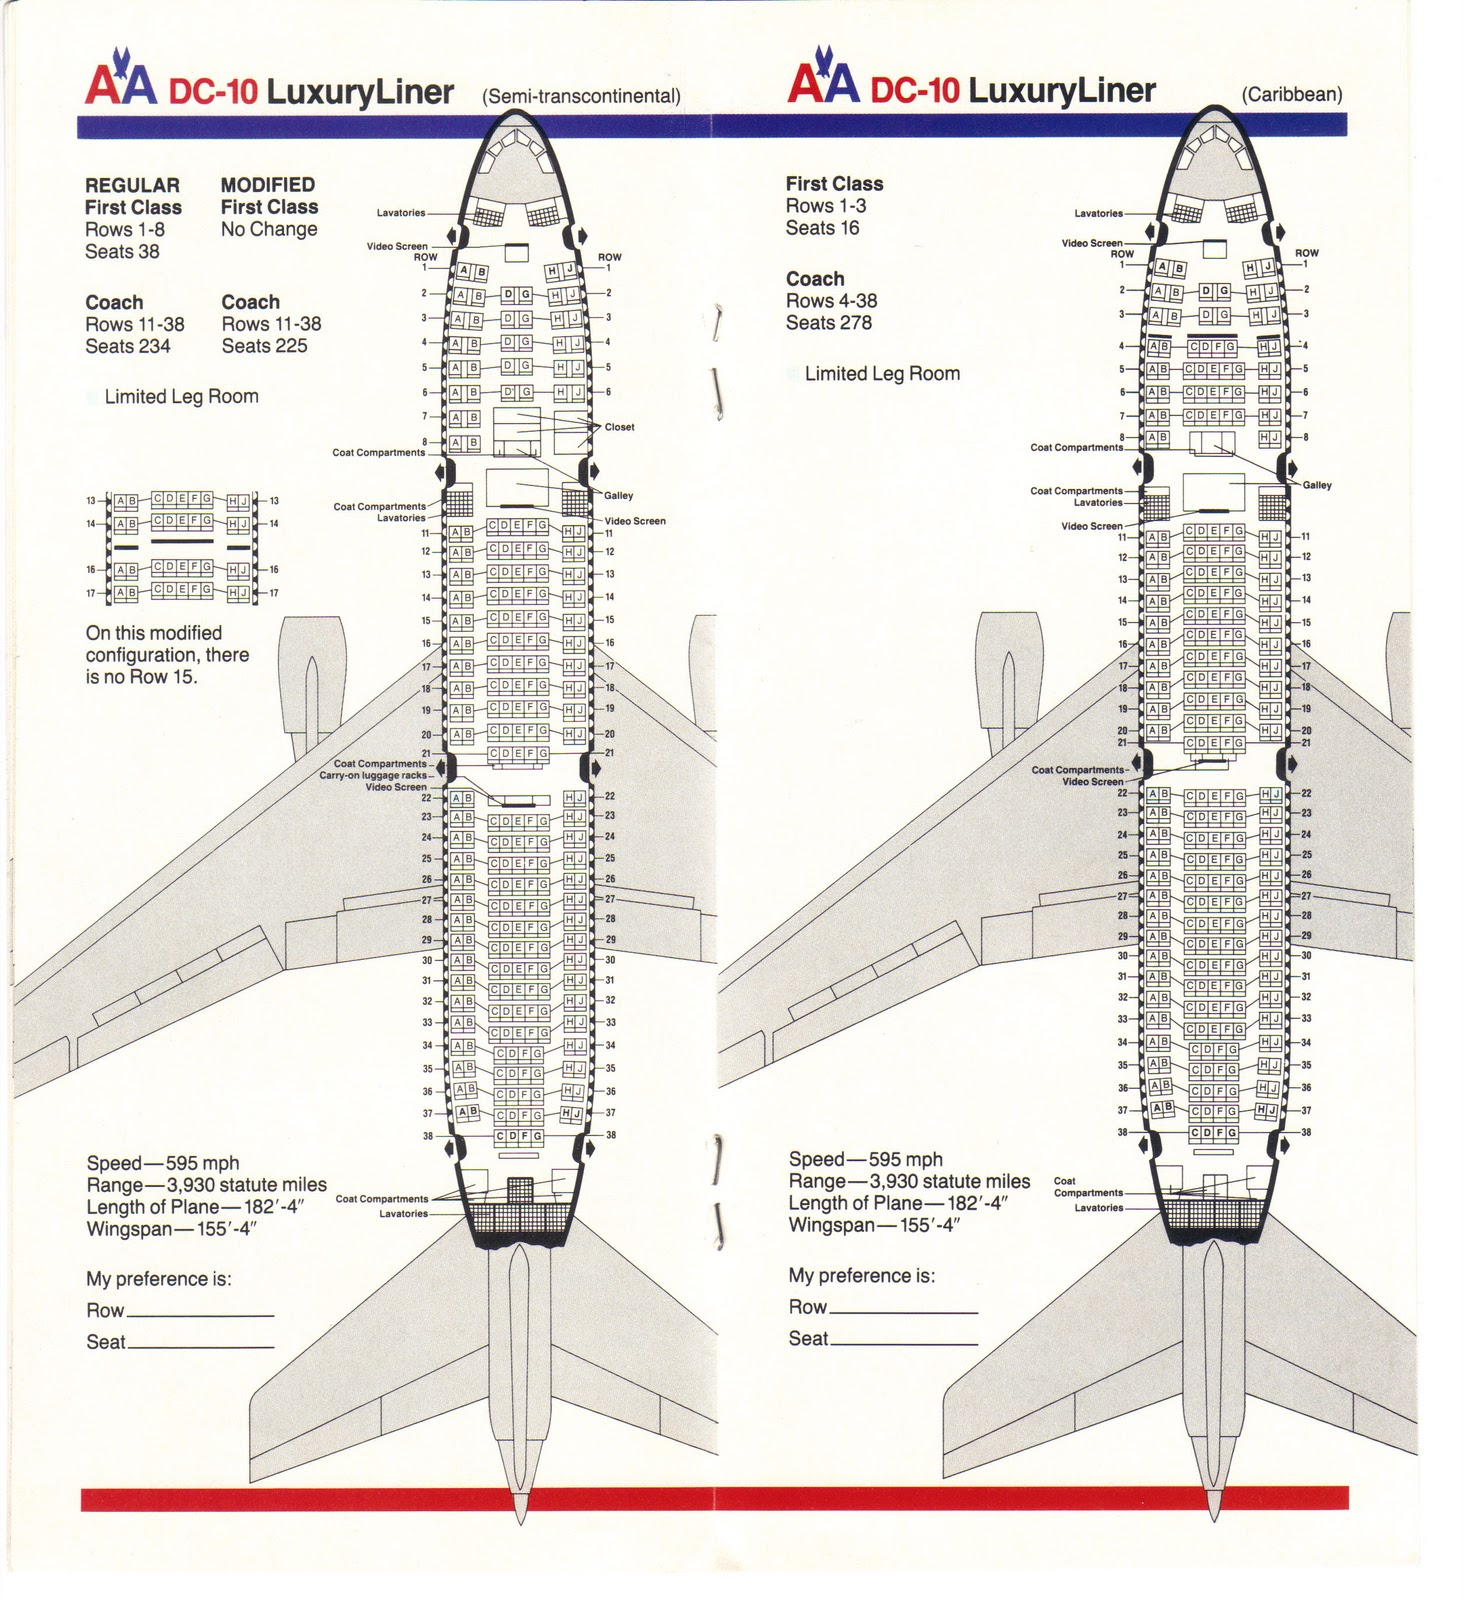 american airlines dc 10 seating guide map